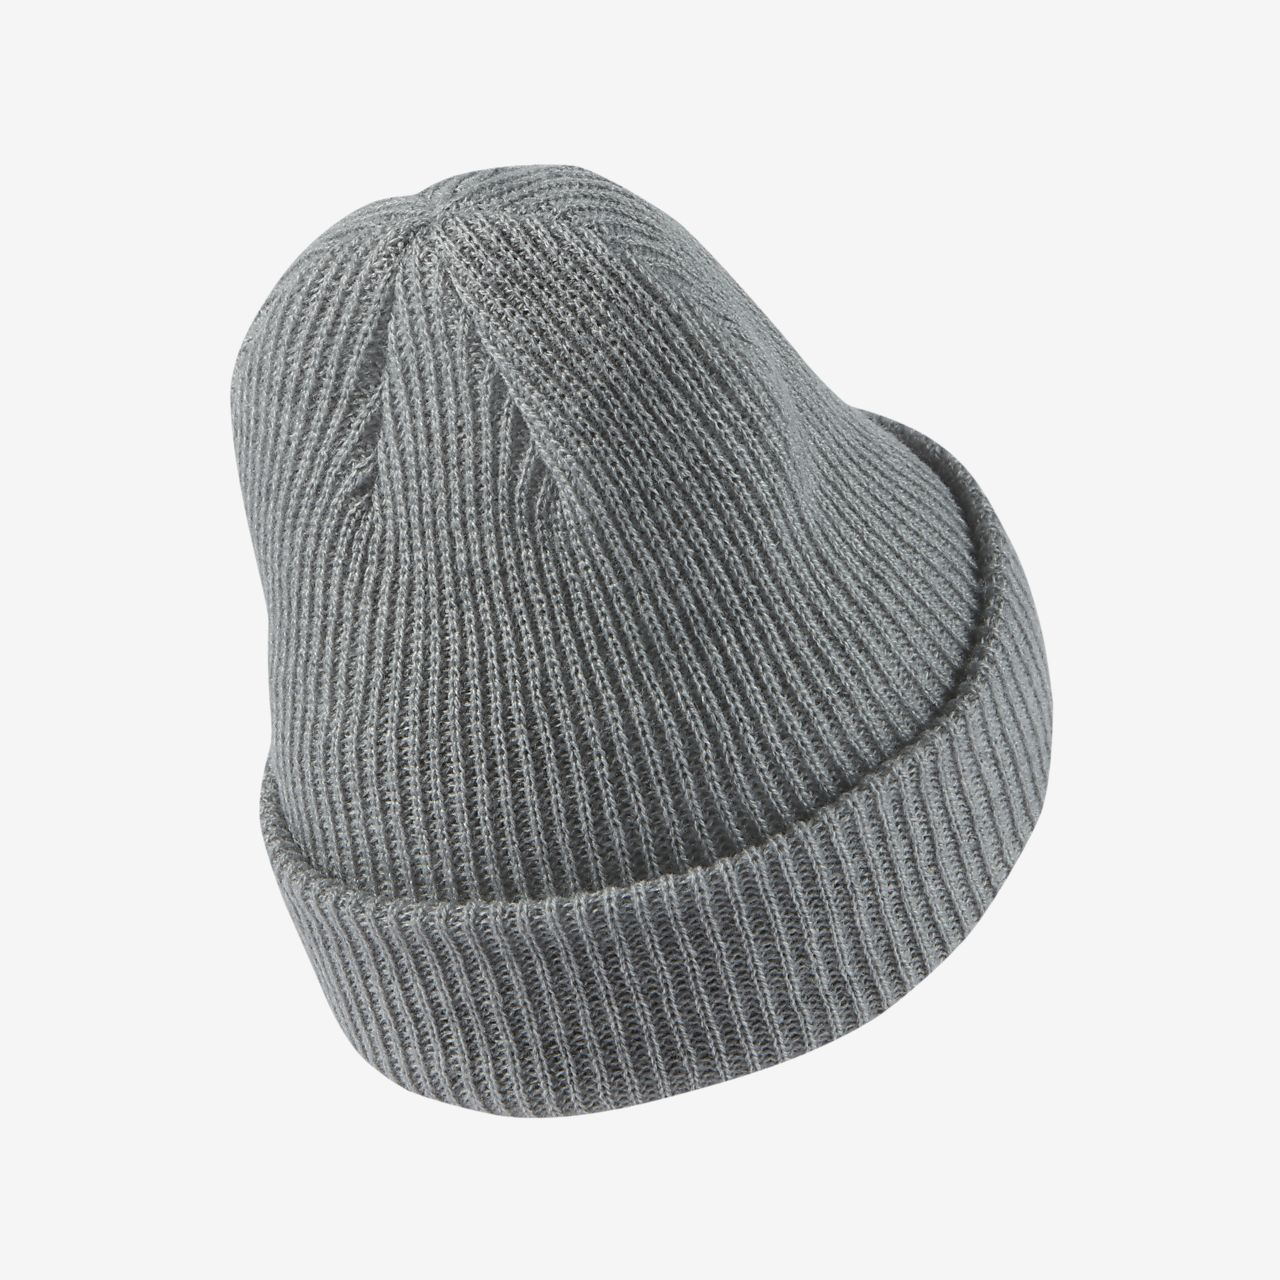 lowest price 02db3 81596 ... Nike SB Fisherman Knit Hat